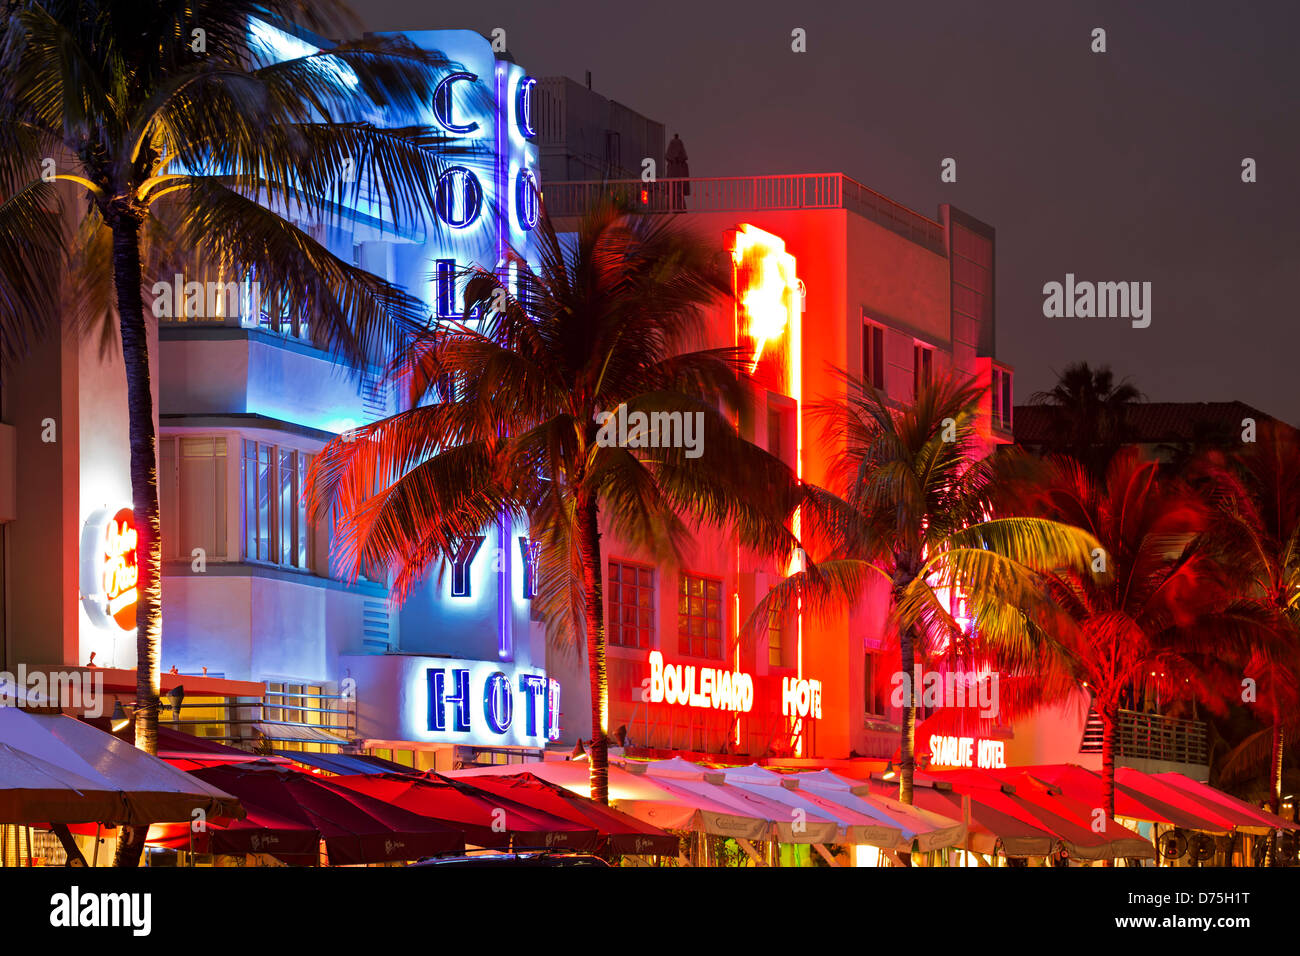 Row of hotels, Colony Hotel, South Beach, Miami Beach, Florida USA Stock Photo